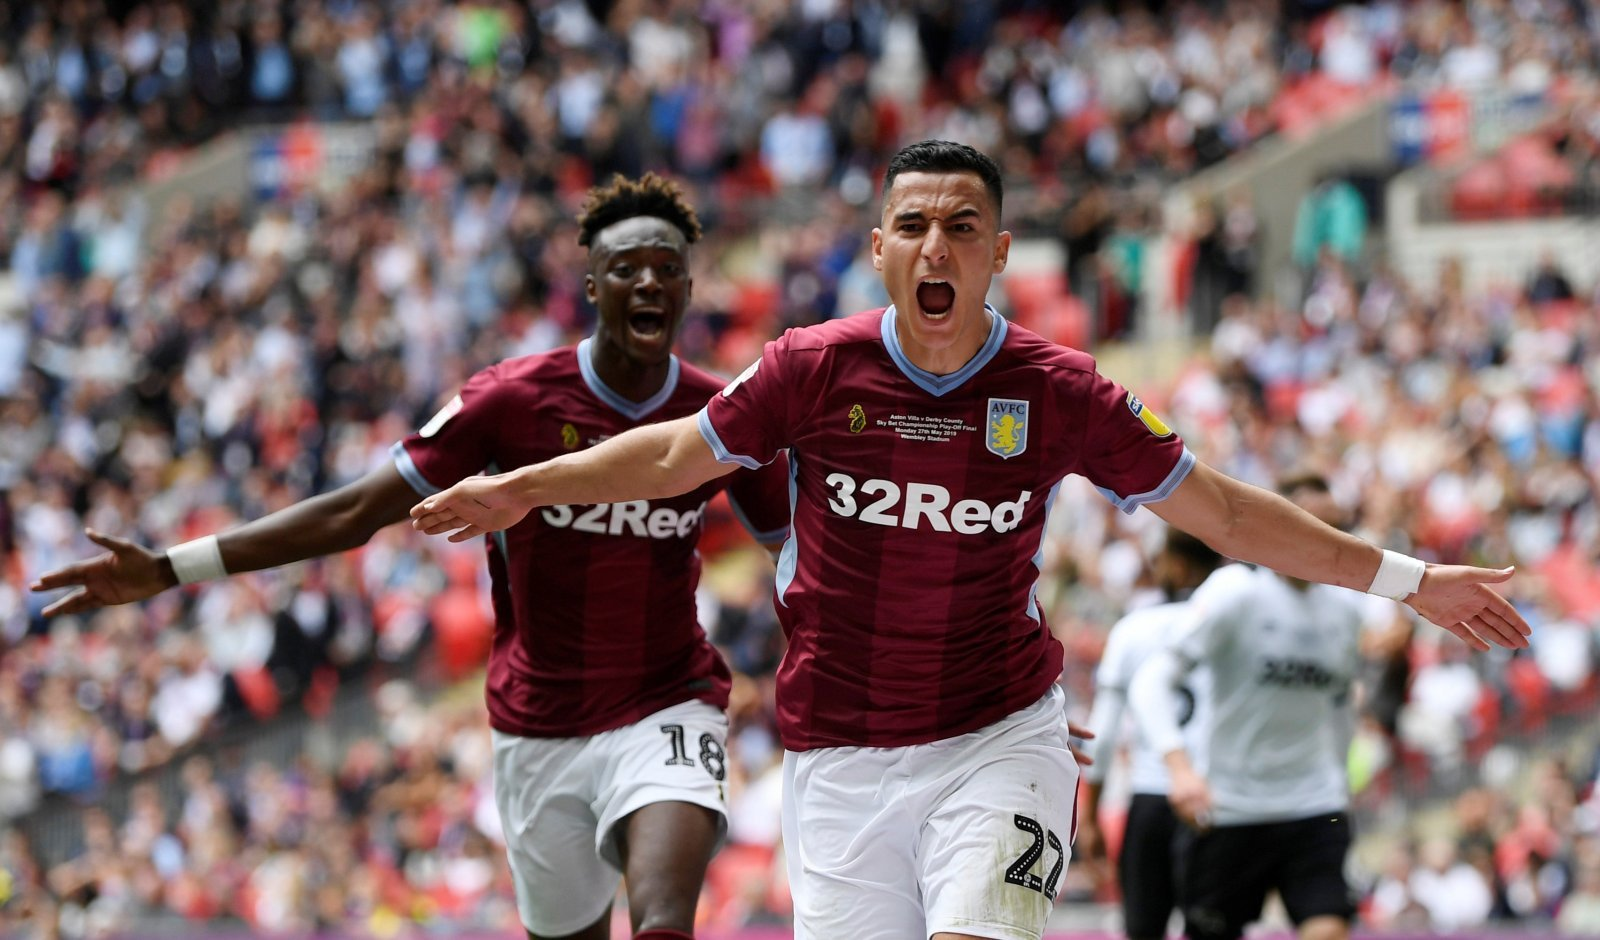 Unsung hero: Aston Villa's El Ghazi really turned it on at the right time